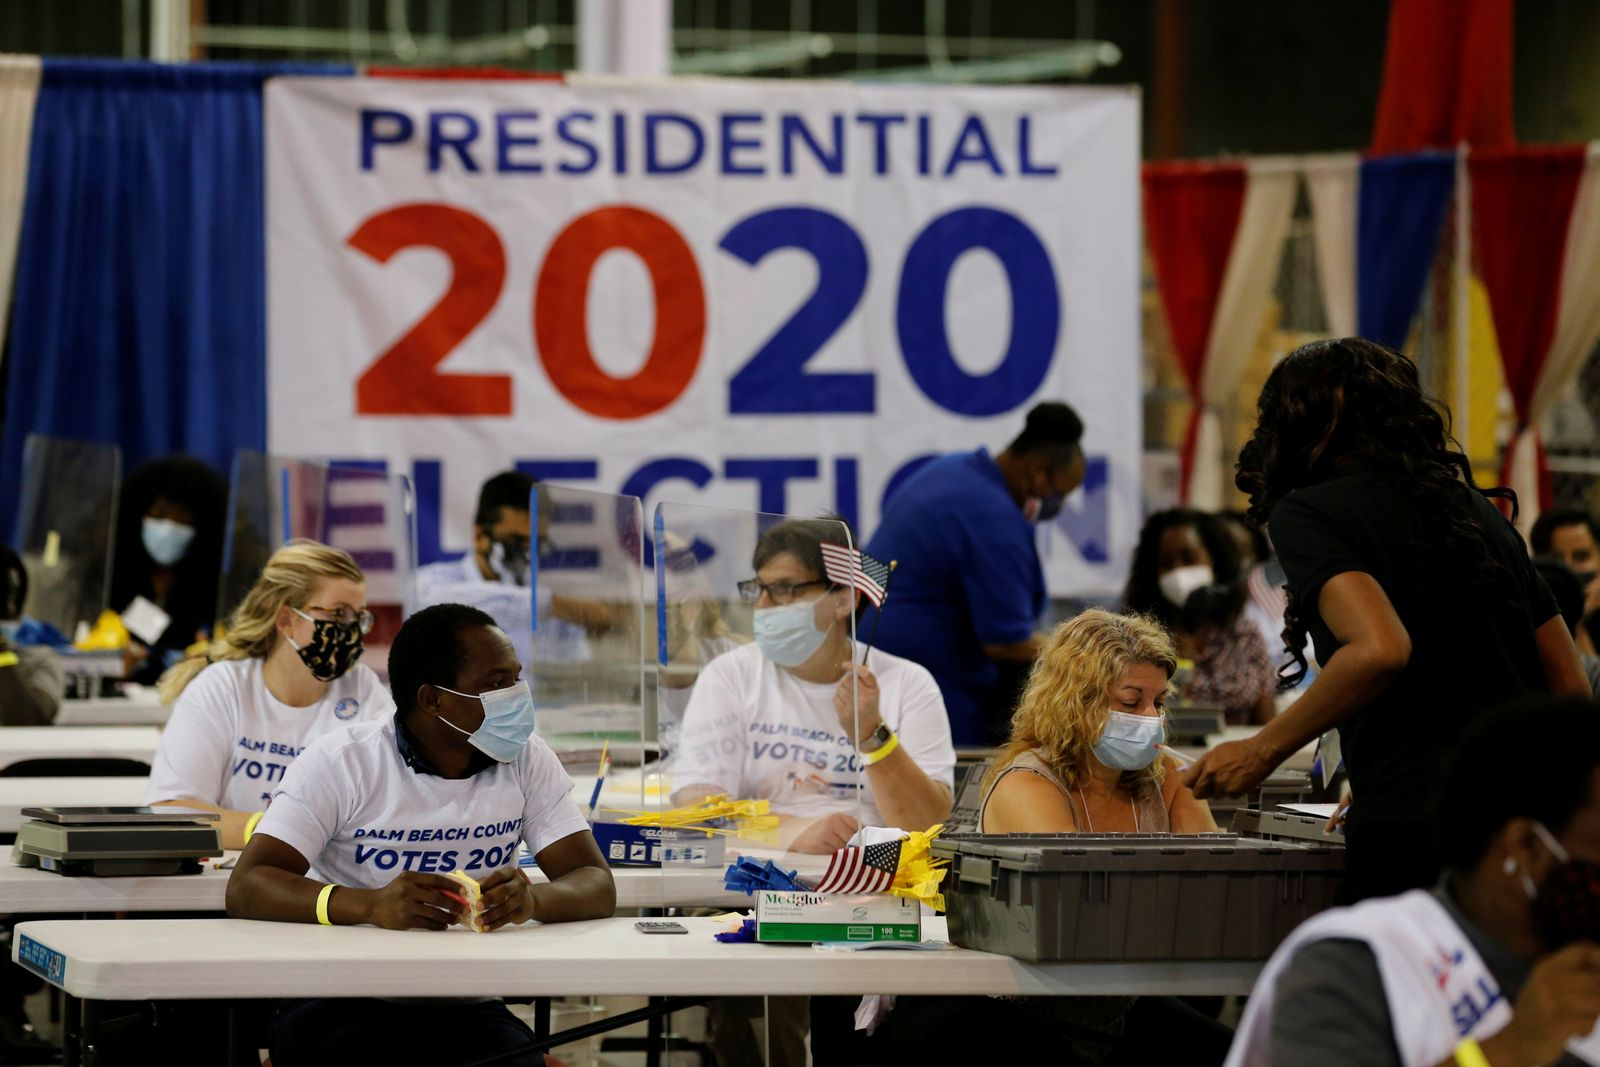 The 2020 U.S. presidential election in West Palm Beach